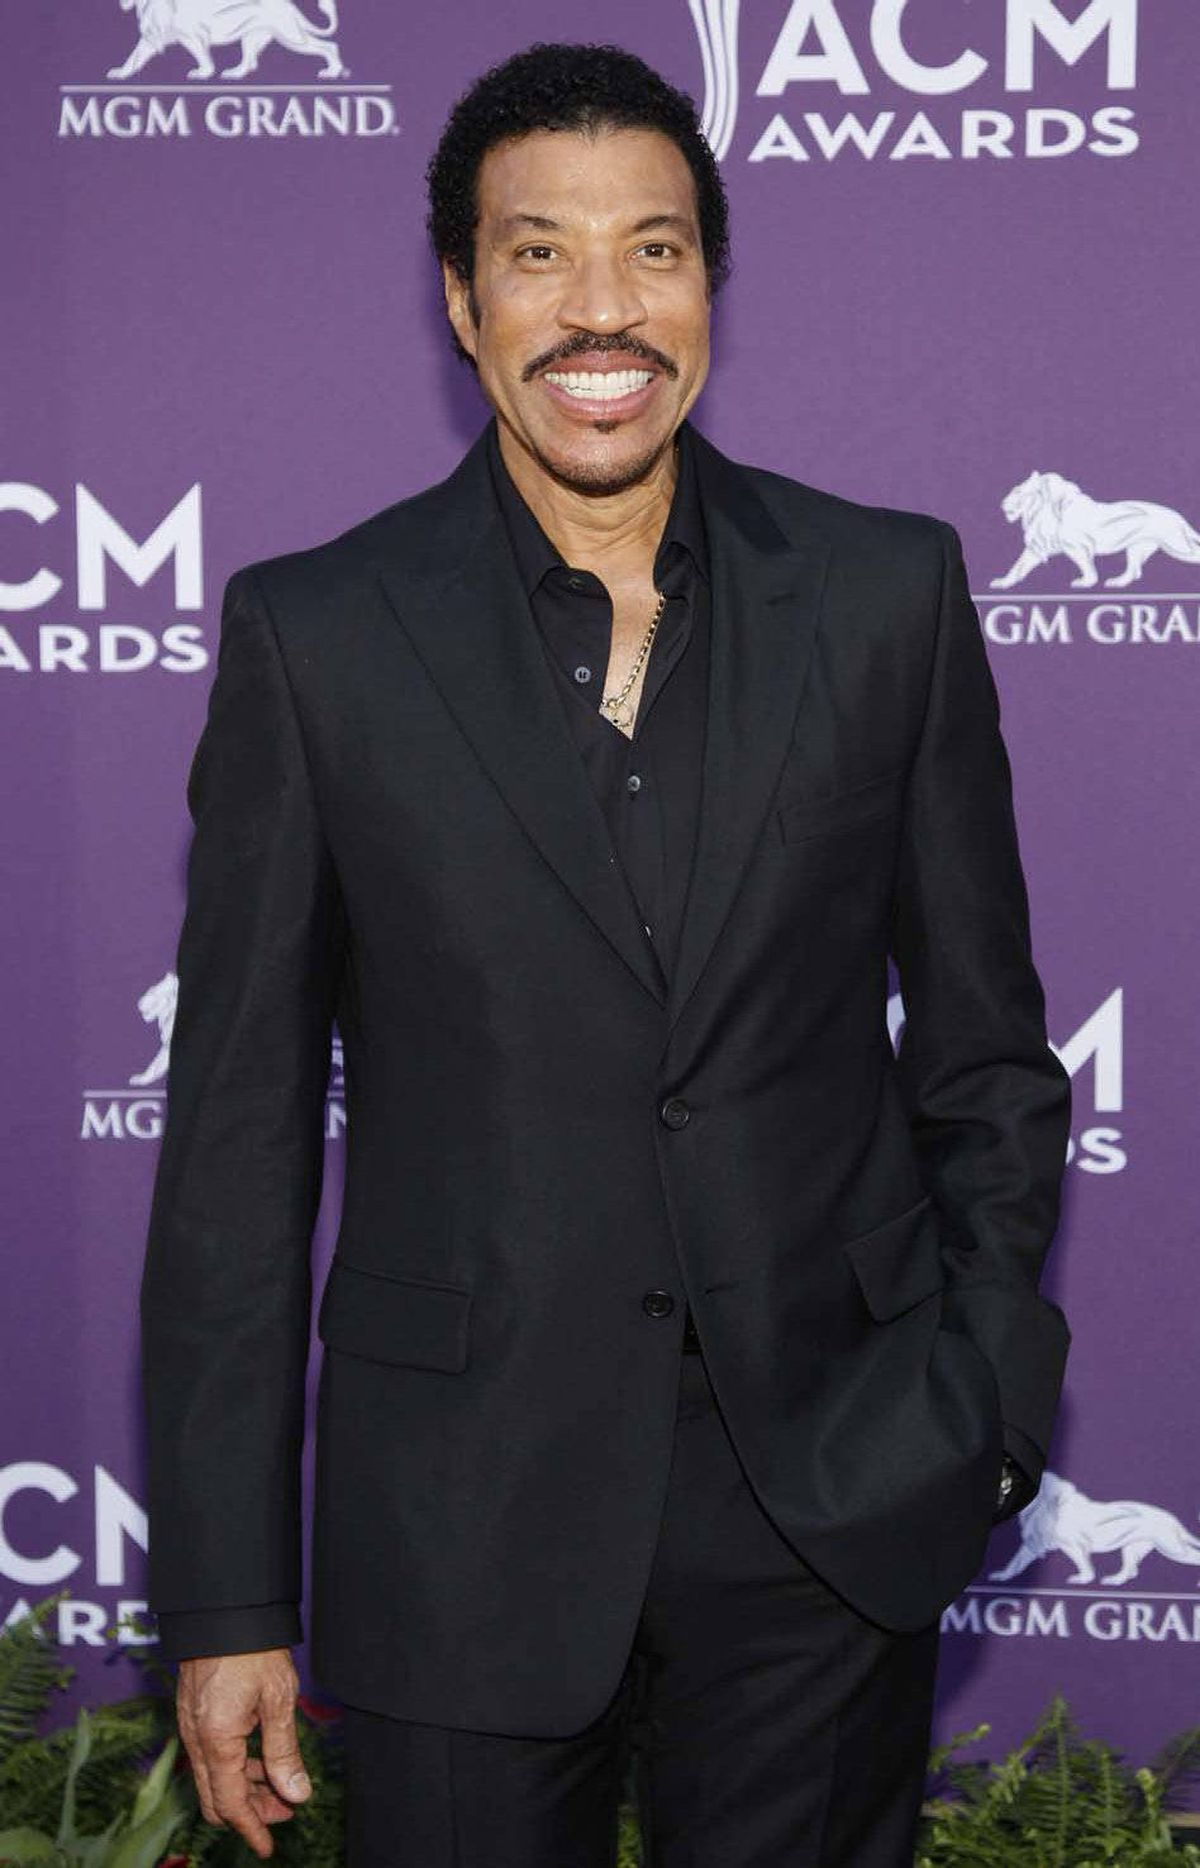 What? Funkmeister Lionel Richie attended the Academy of Country Music Awards in Las Vegas on Sunday. What's next? Kiss?